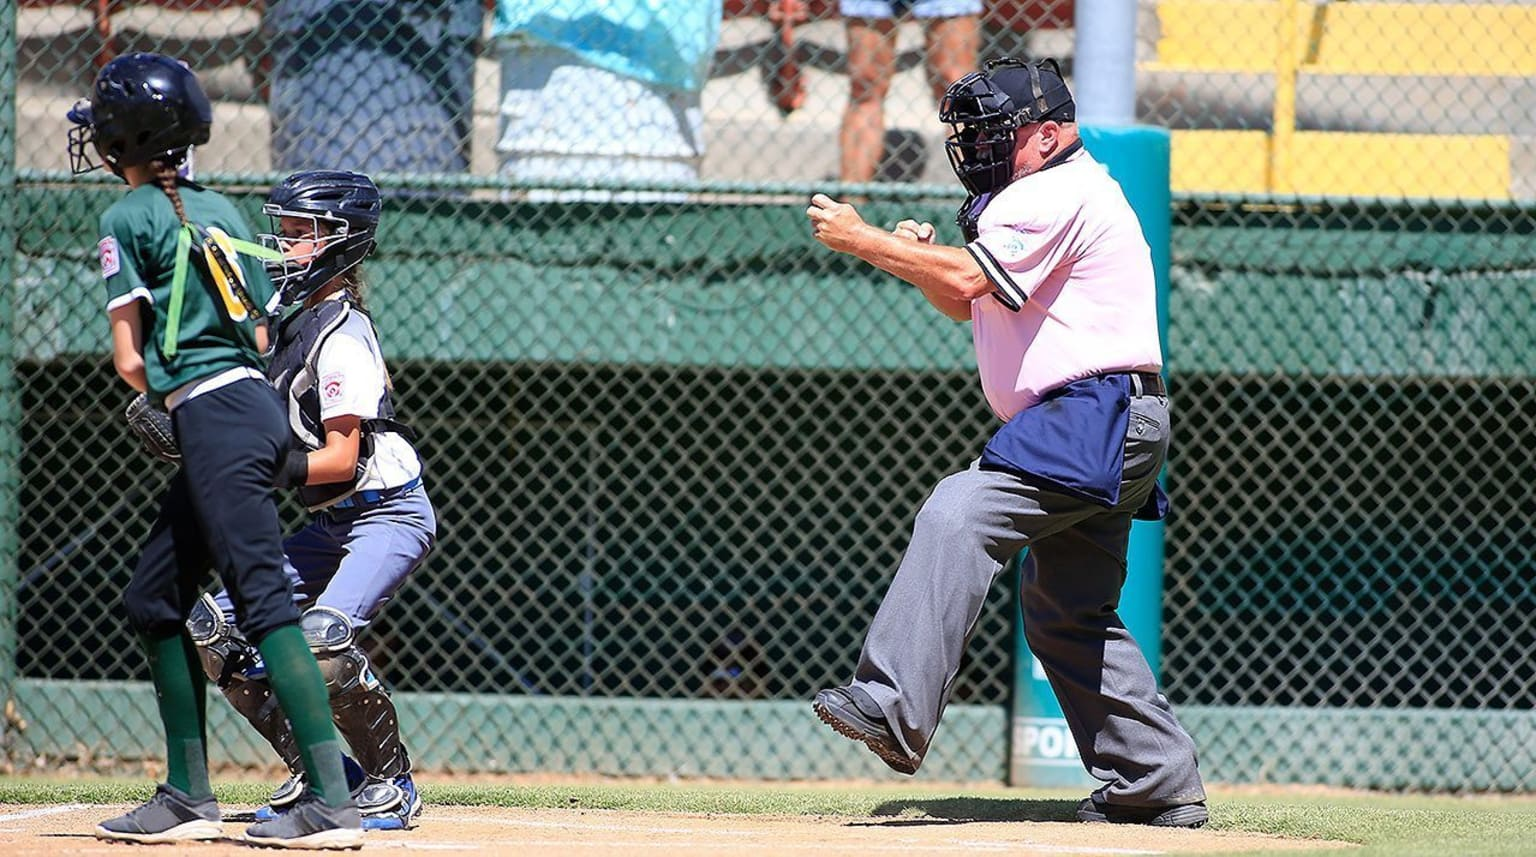 10 Commonly Misinterpreted Little League® Rules - Little League